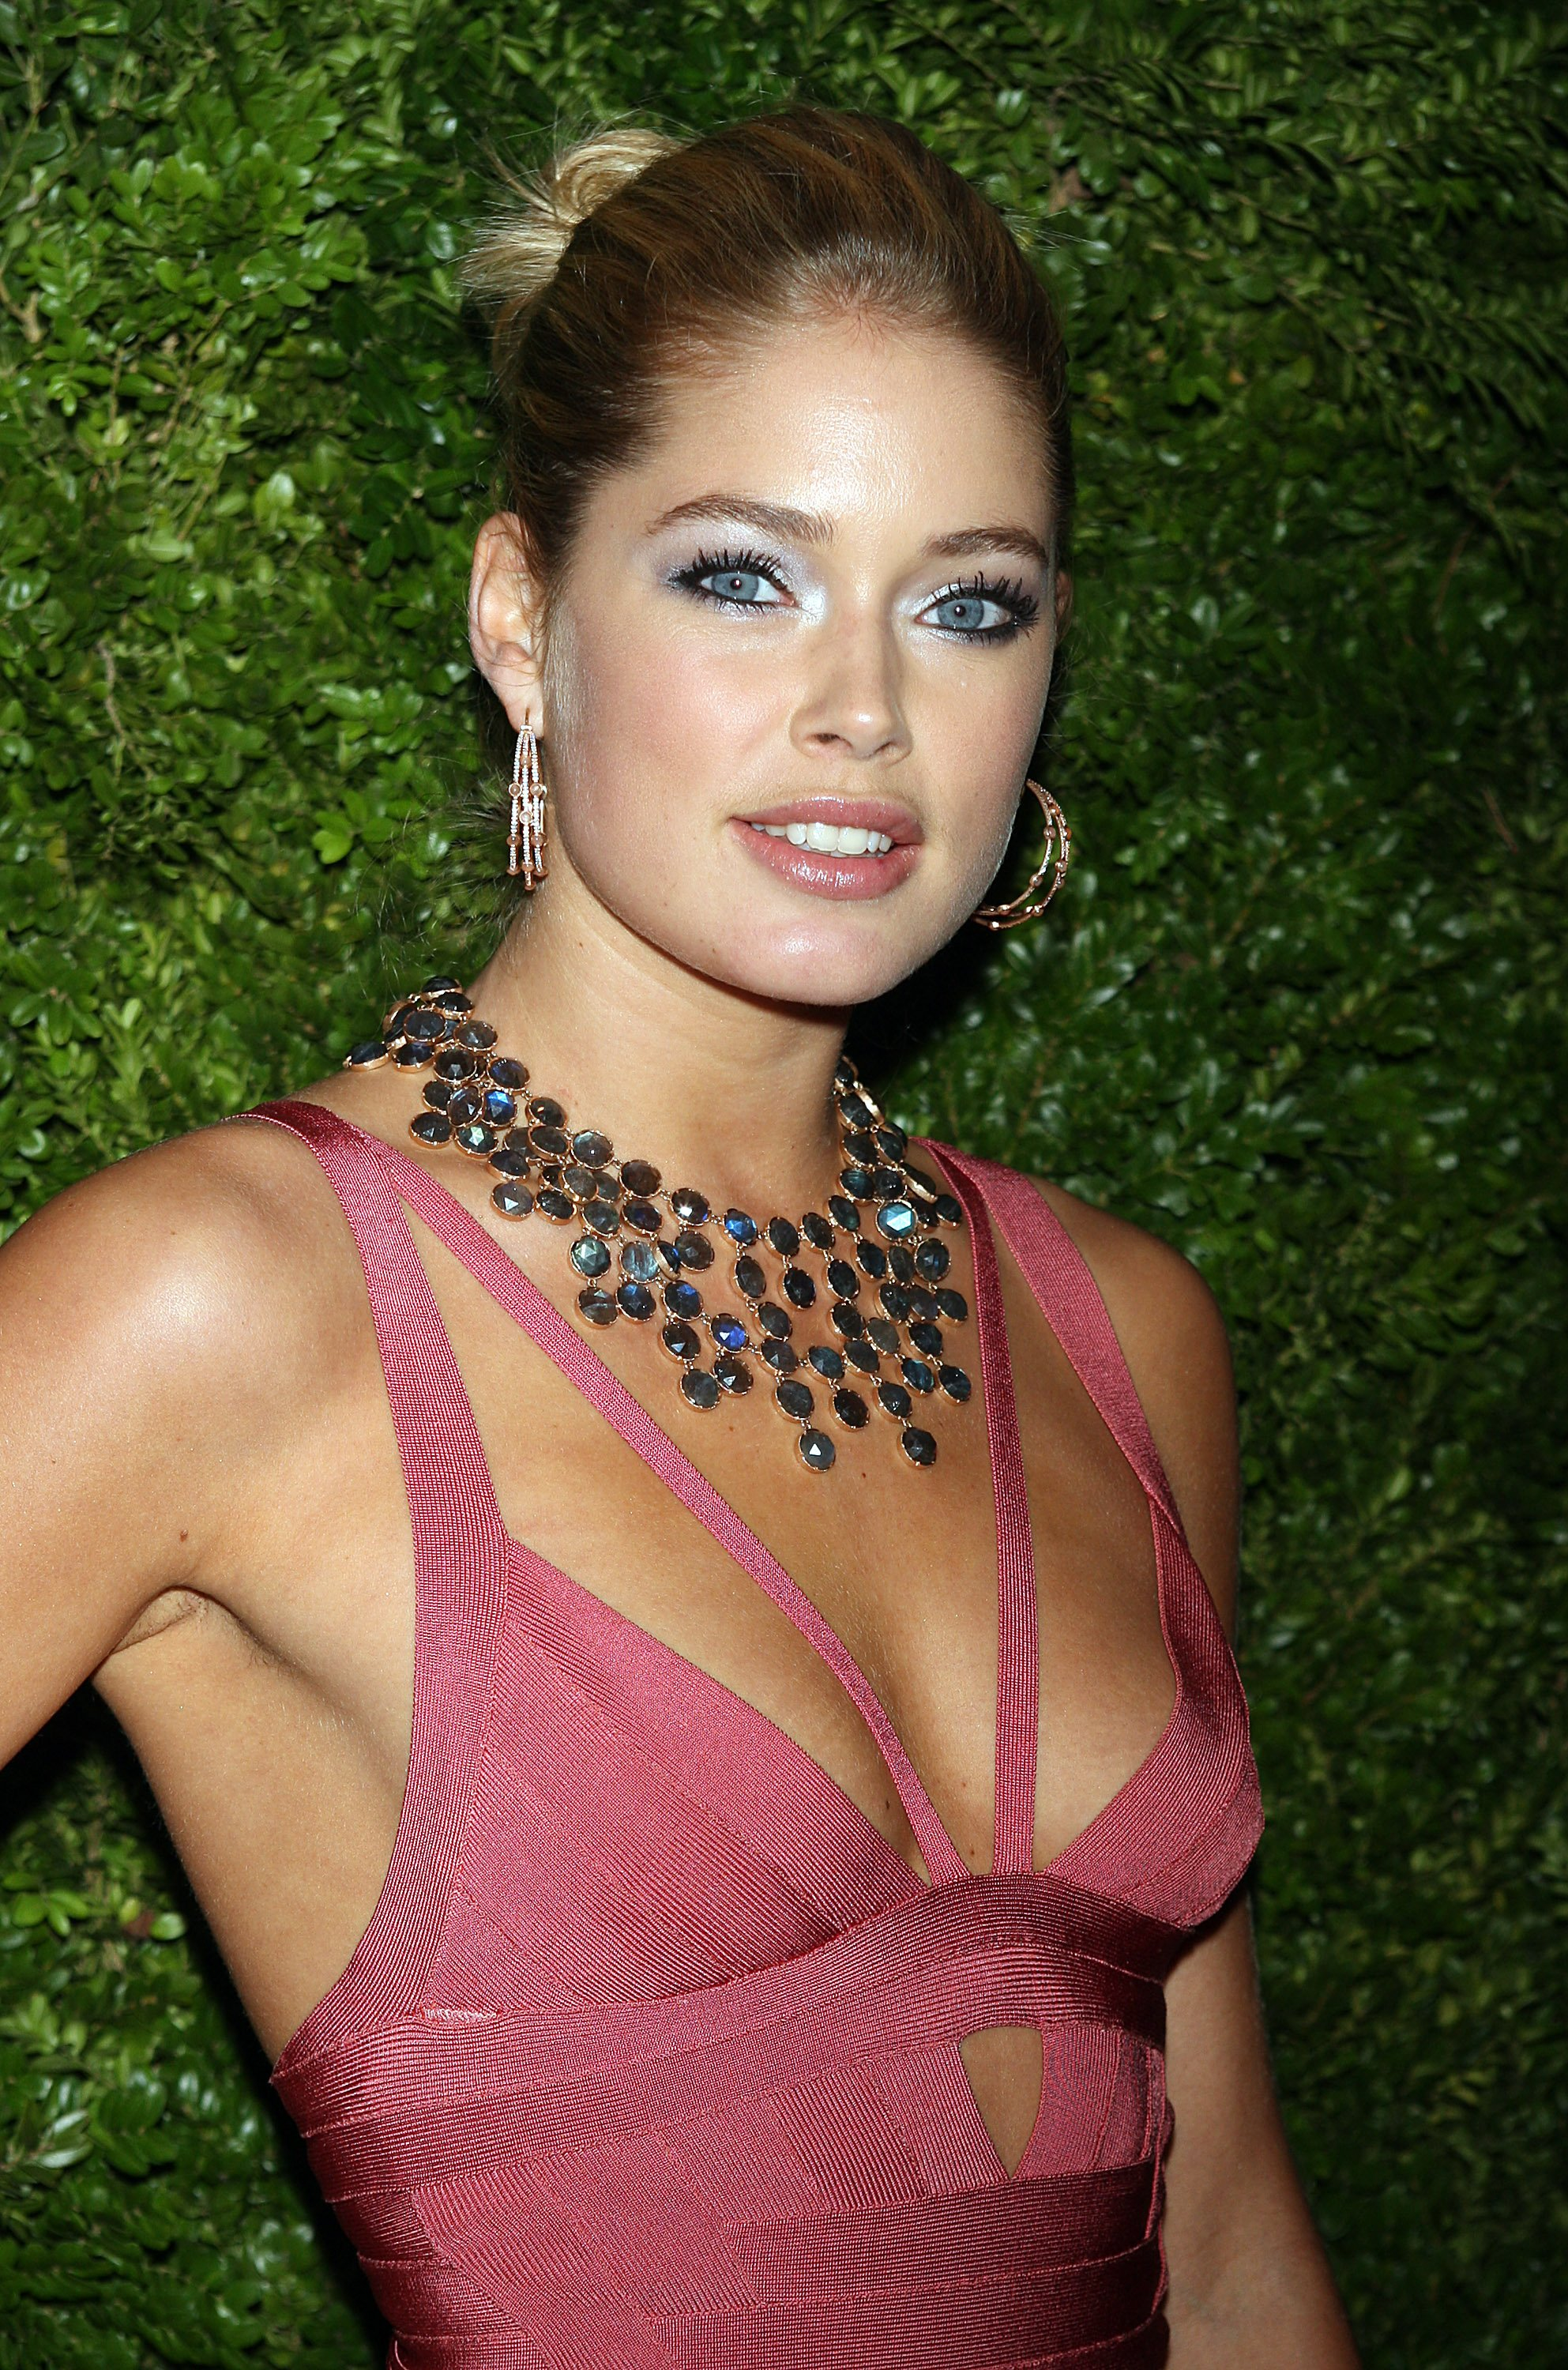 92020_Celebutopia-Doutzen_Kroes-5th_Anniversary_of_the_CFDAVogue_Fashion_Fund_-07_122_870lo.jpg